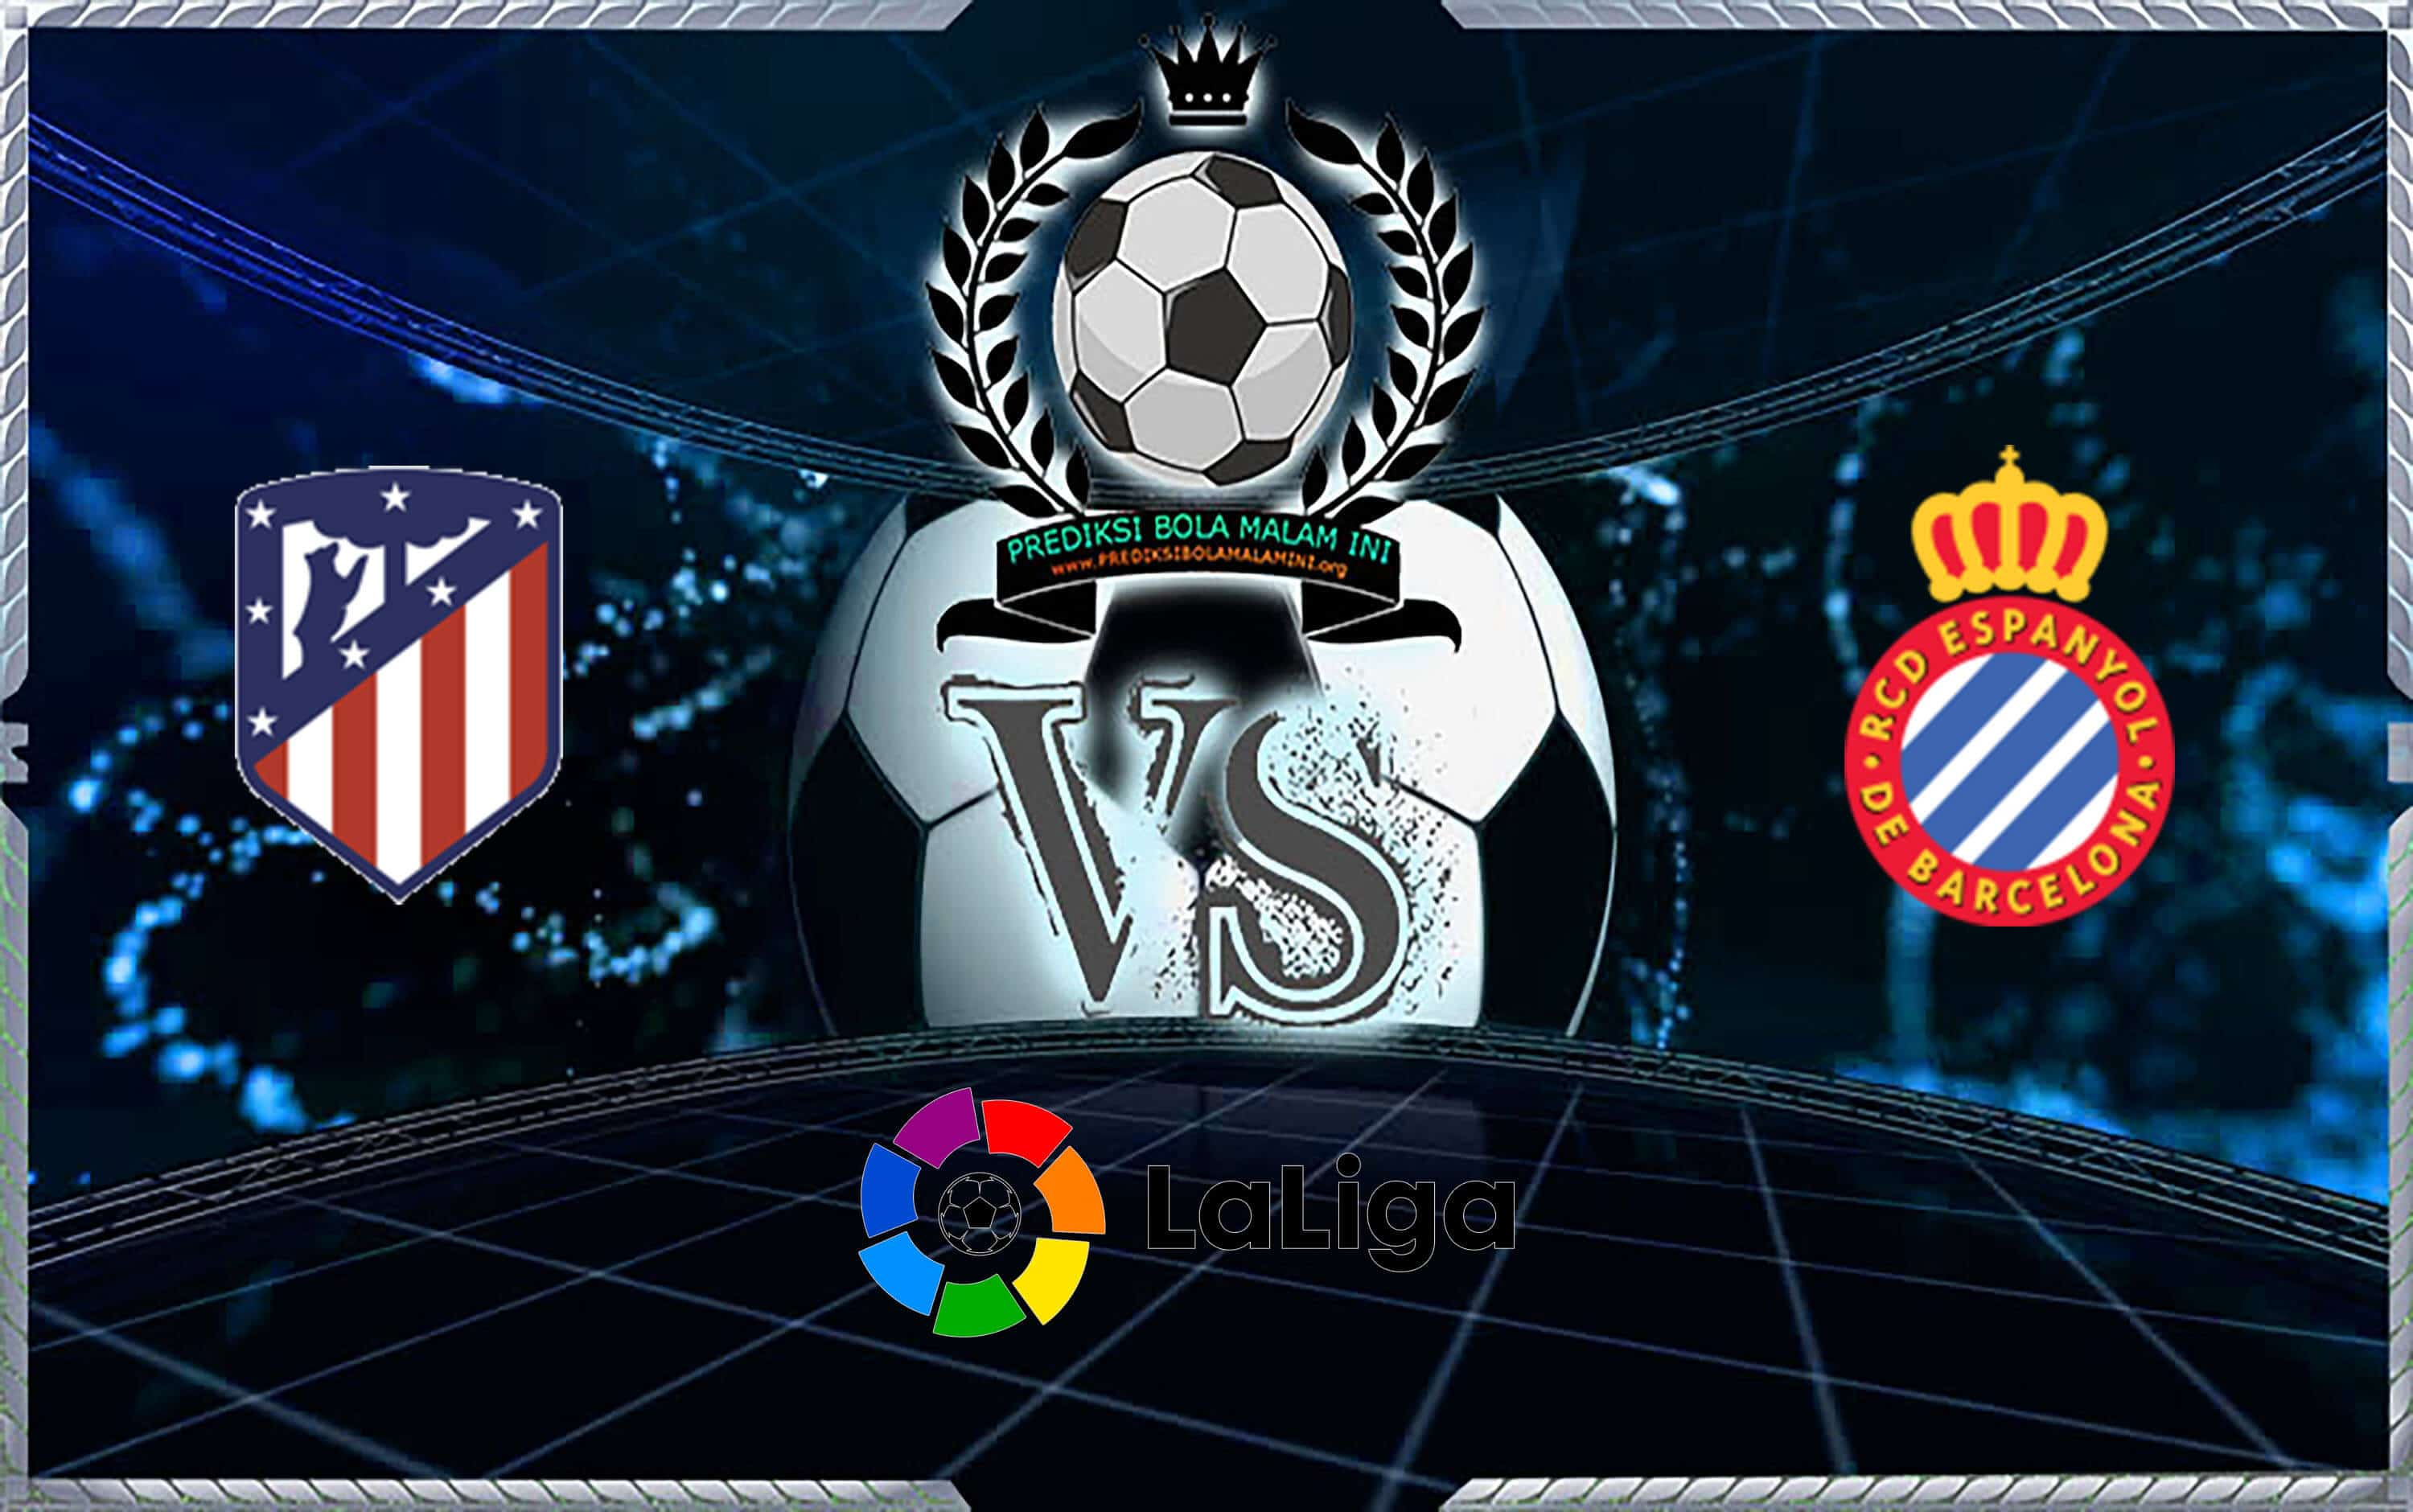 Prediksi Skor Atletico Madrid Vs Espanyol 10 November 2019